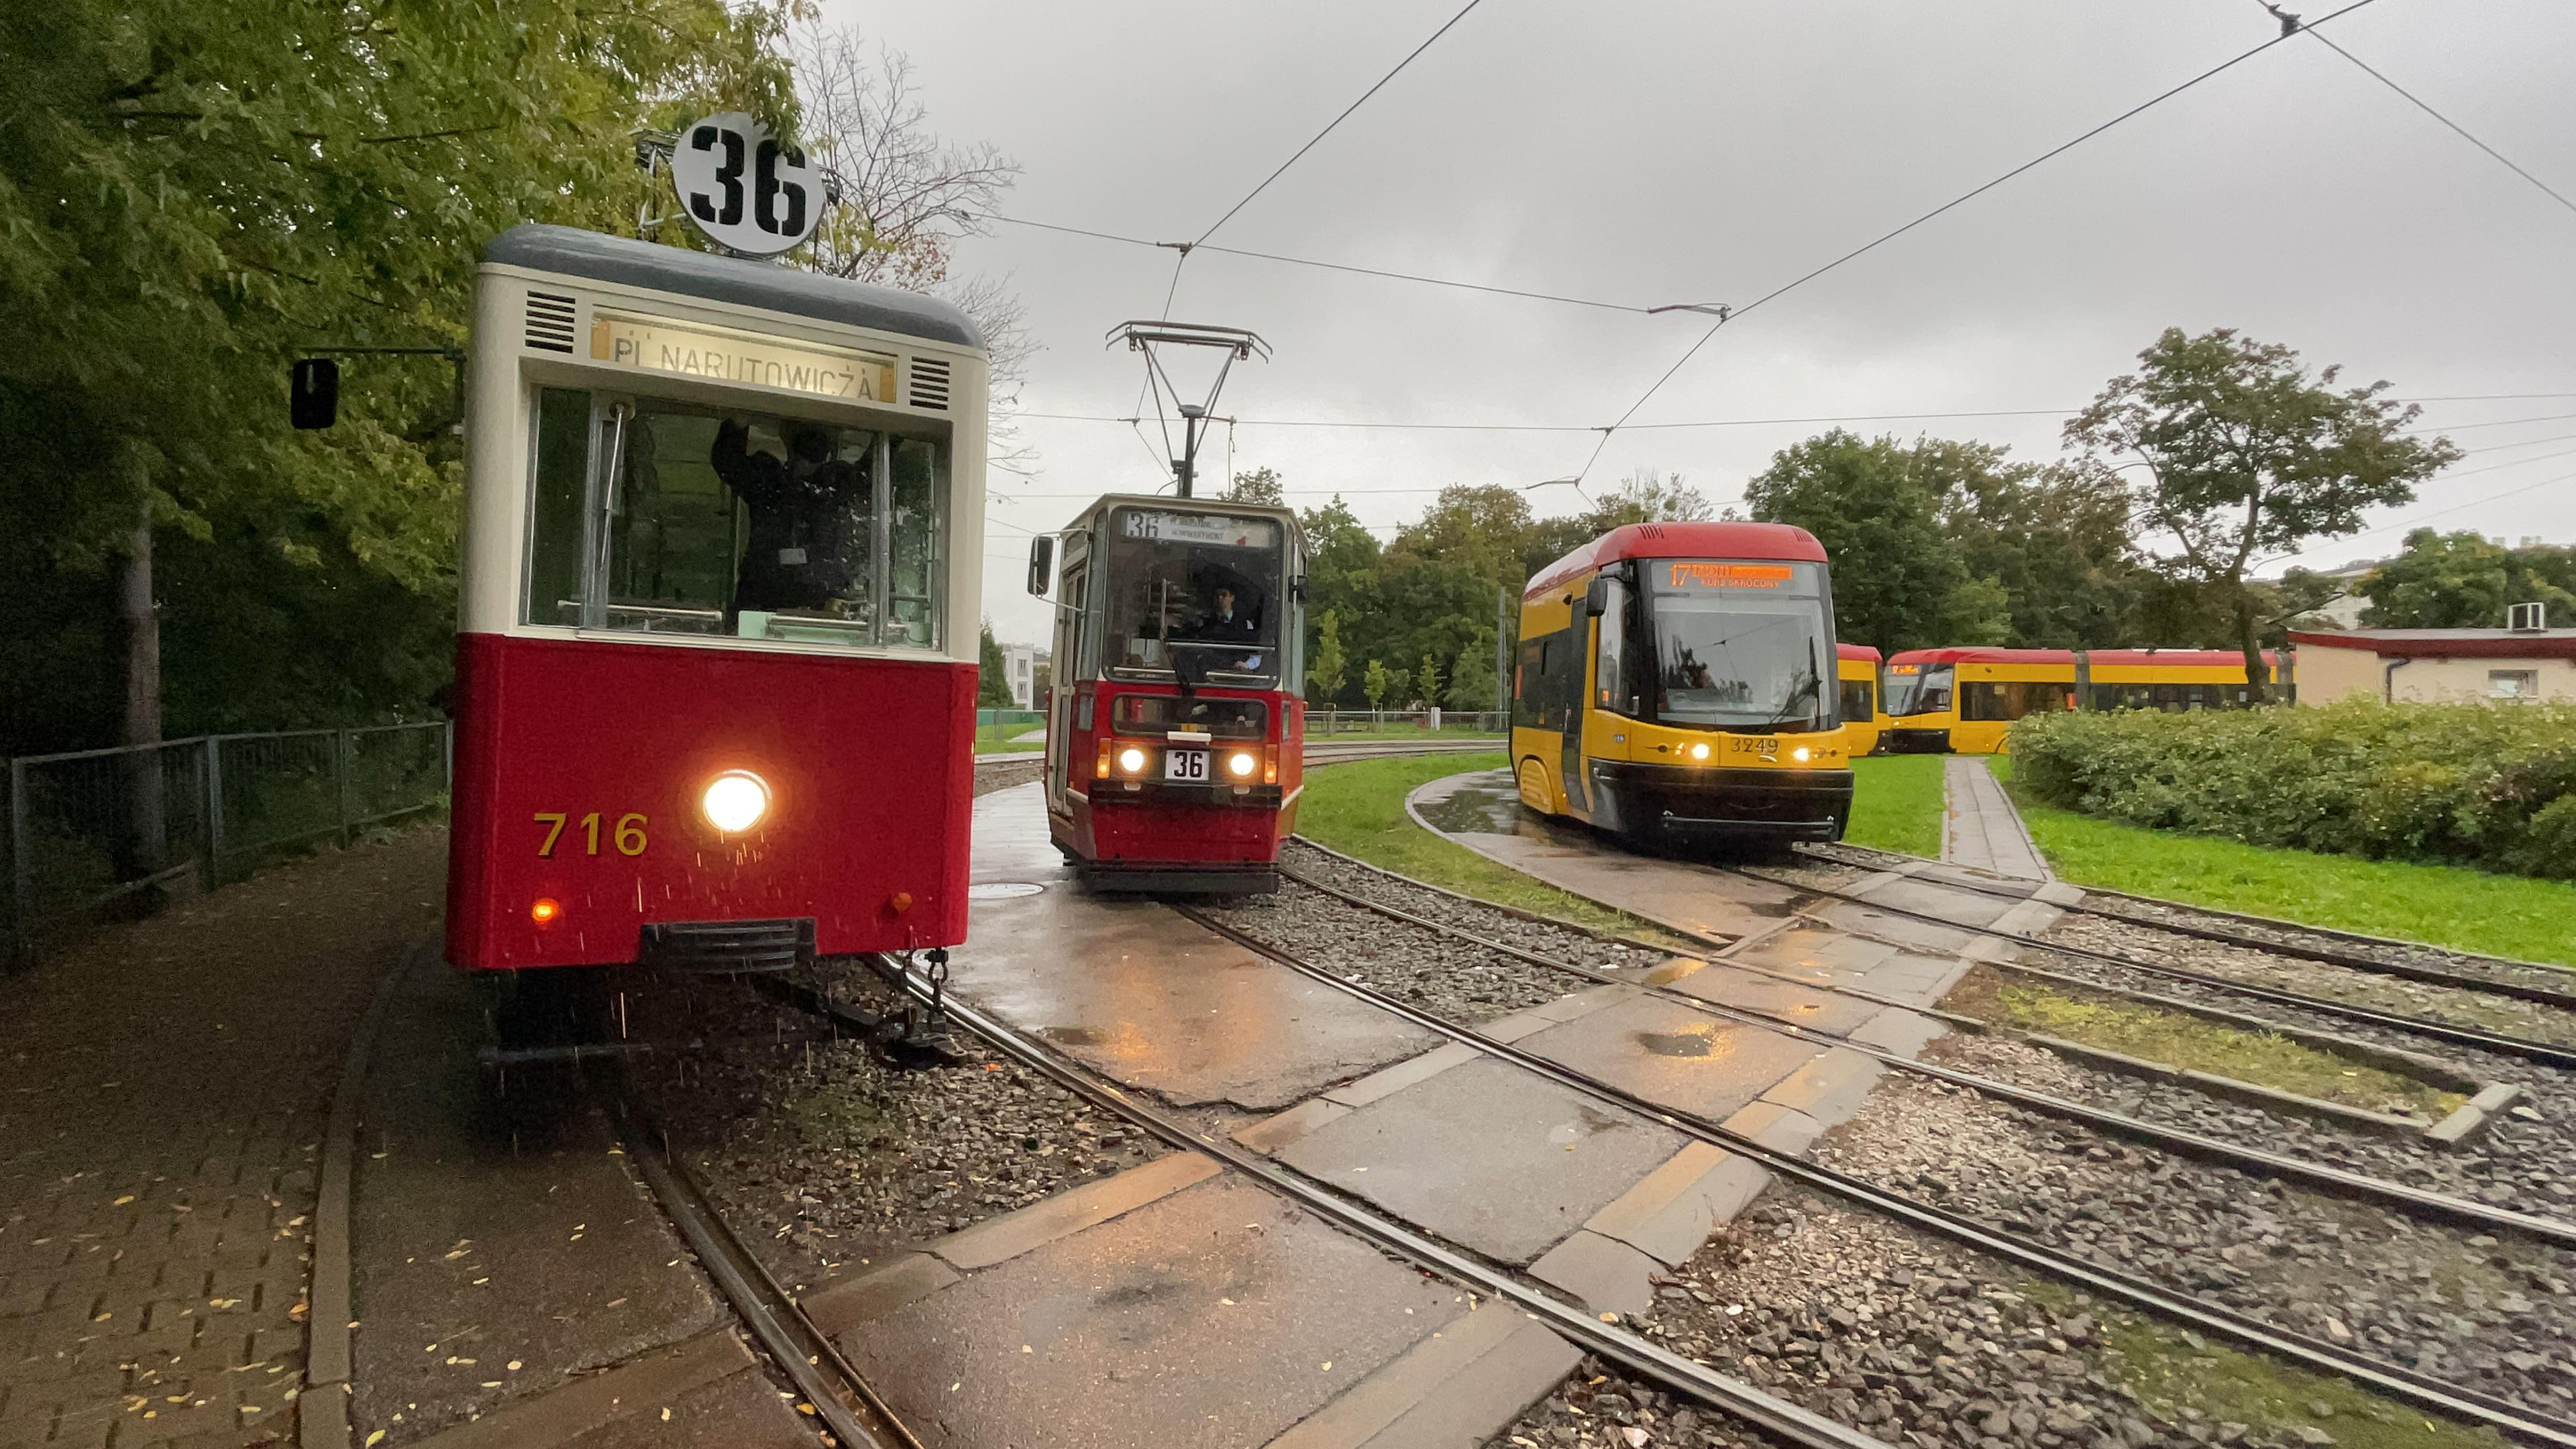 3 generations of Warsaw Trams